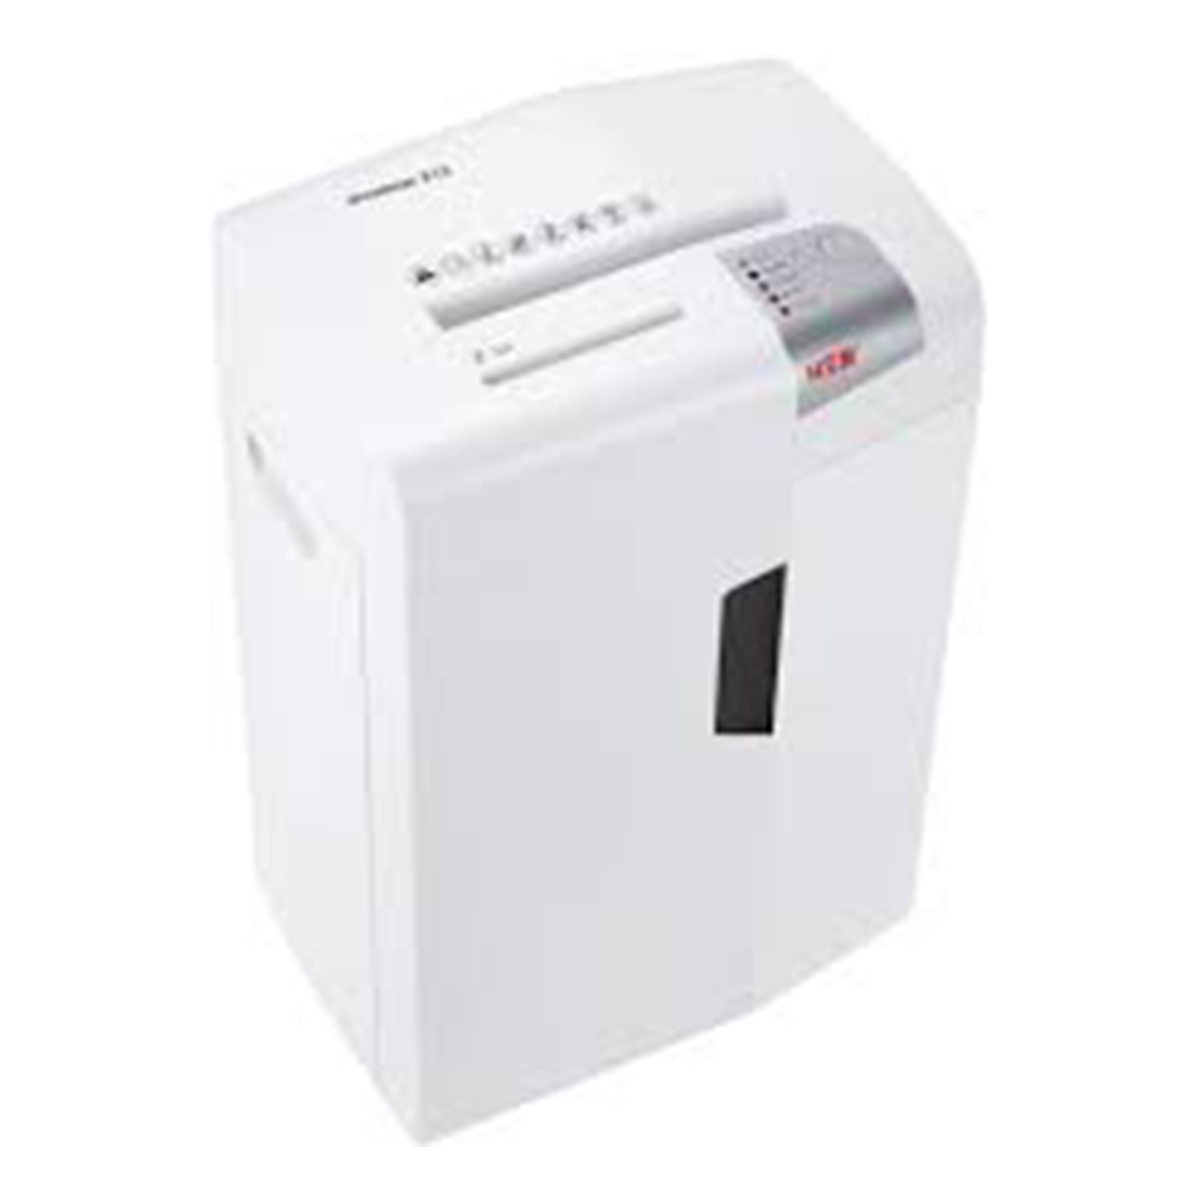 HSM Shredstar X13 Cross Cut Shredder White